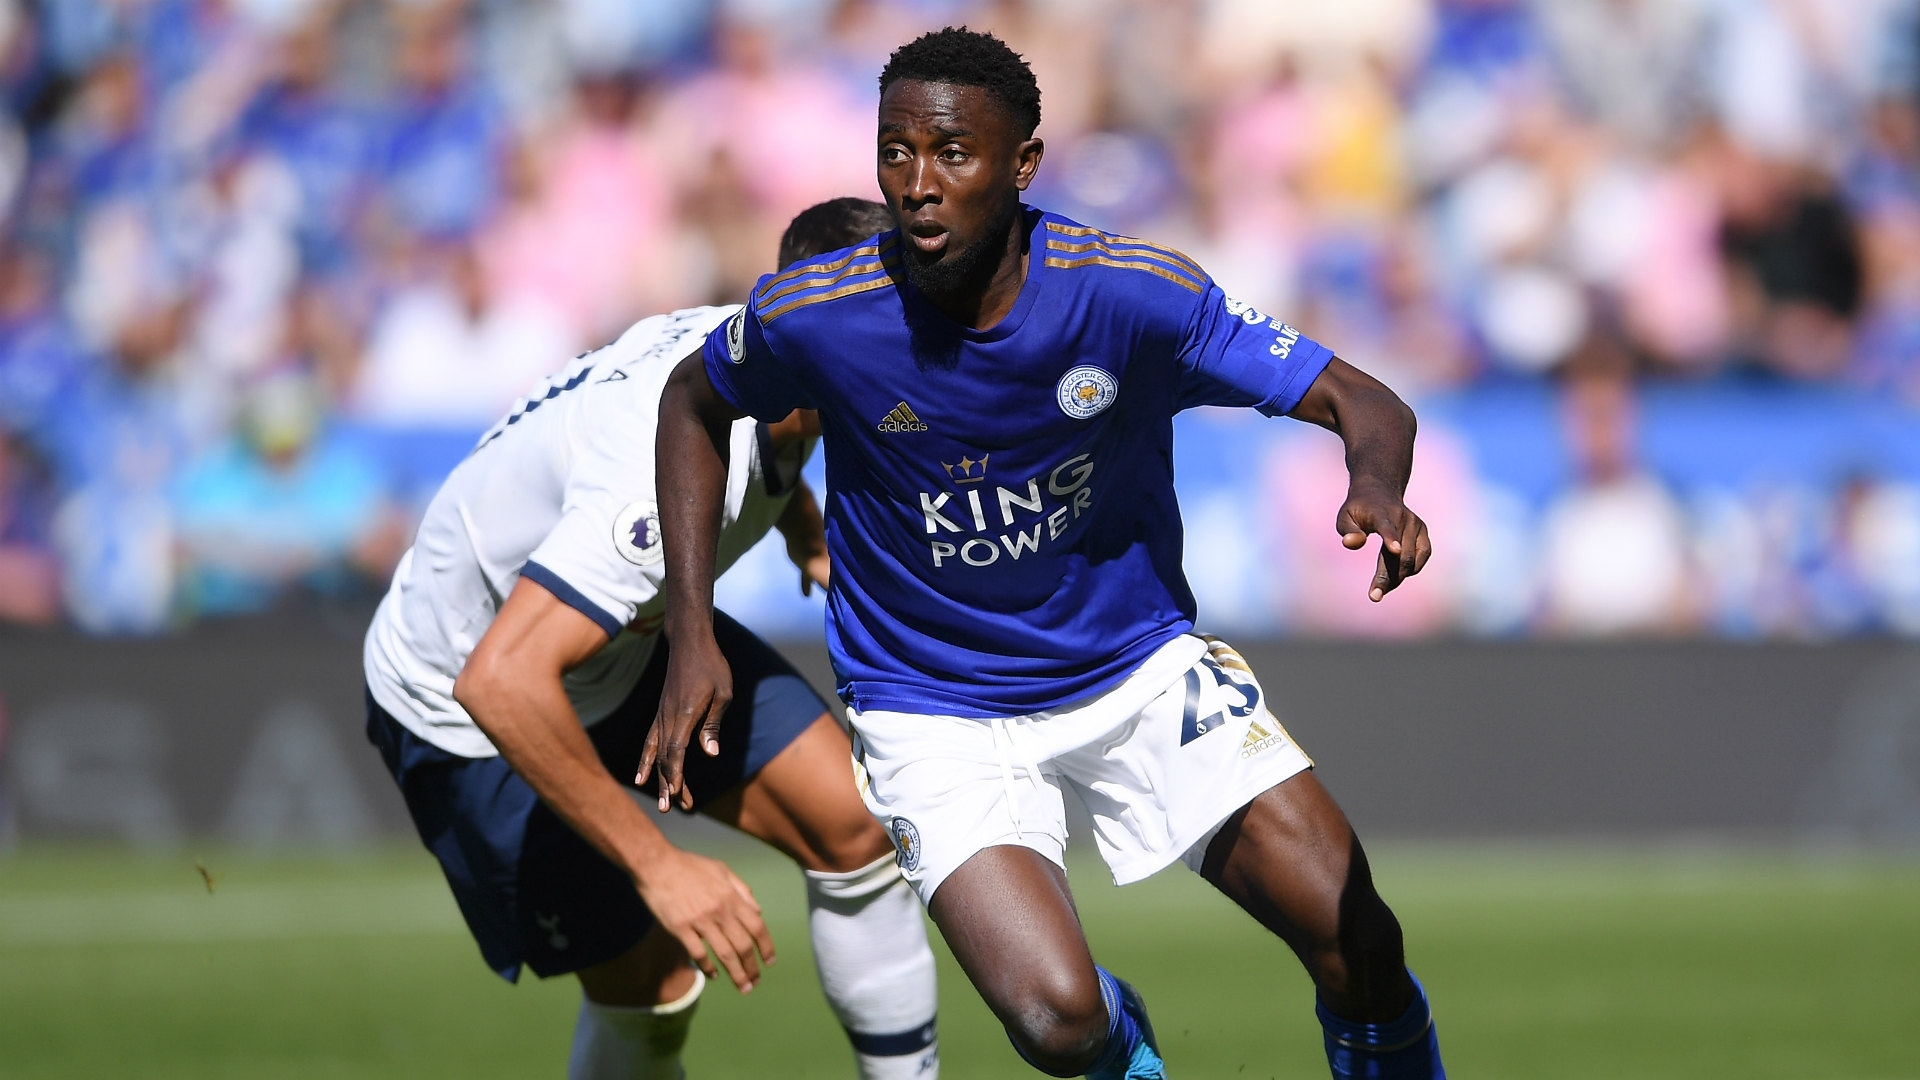 Ferdinand slams Leicester's Ndidi for Chelsea's winning goal in FA Cup